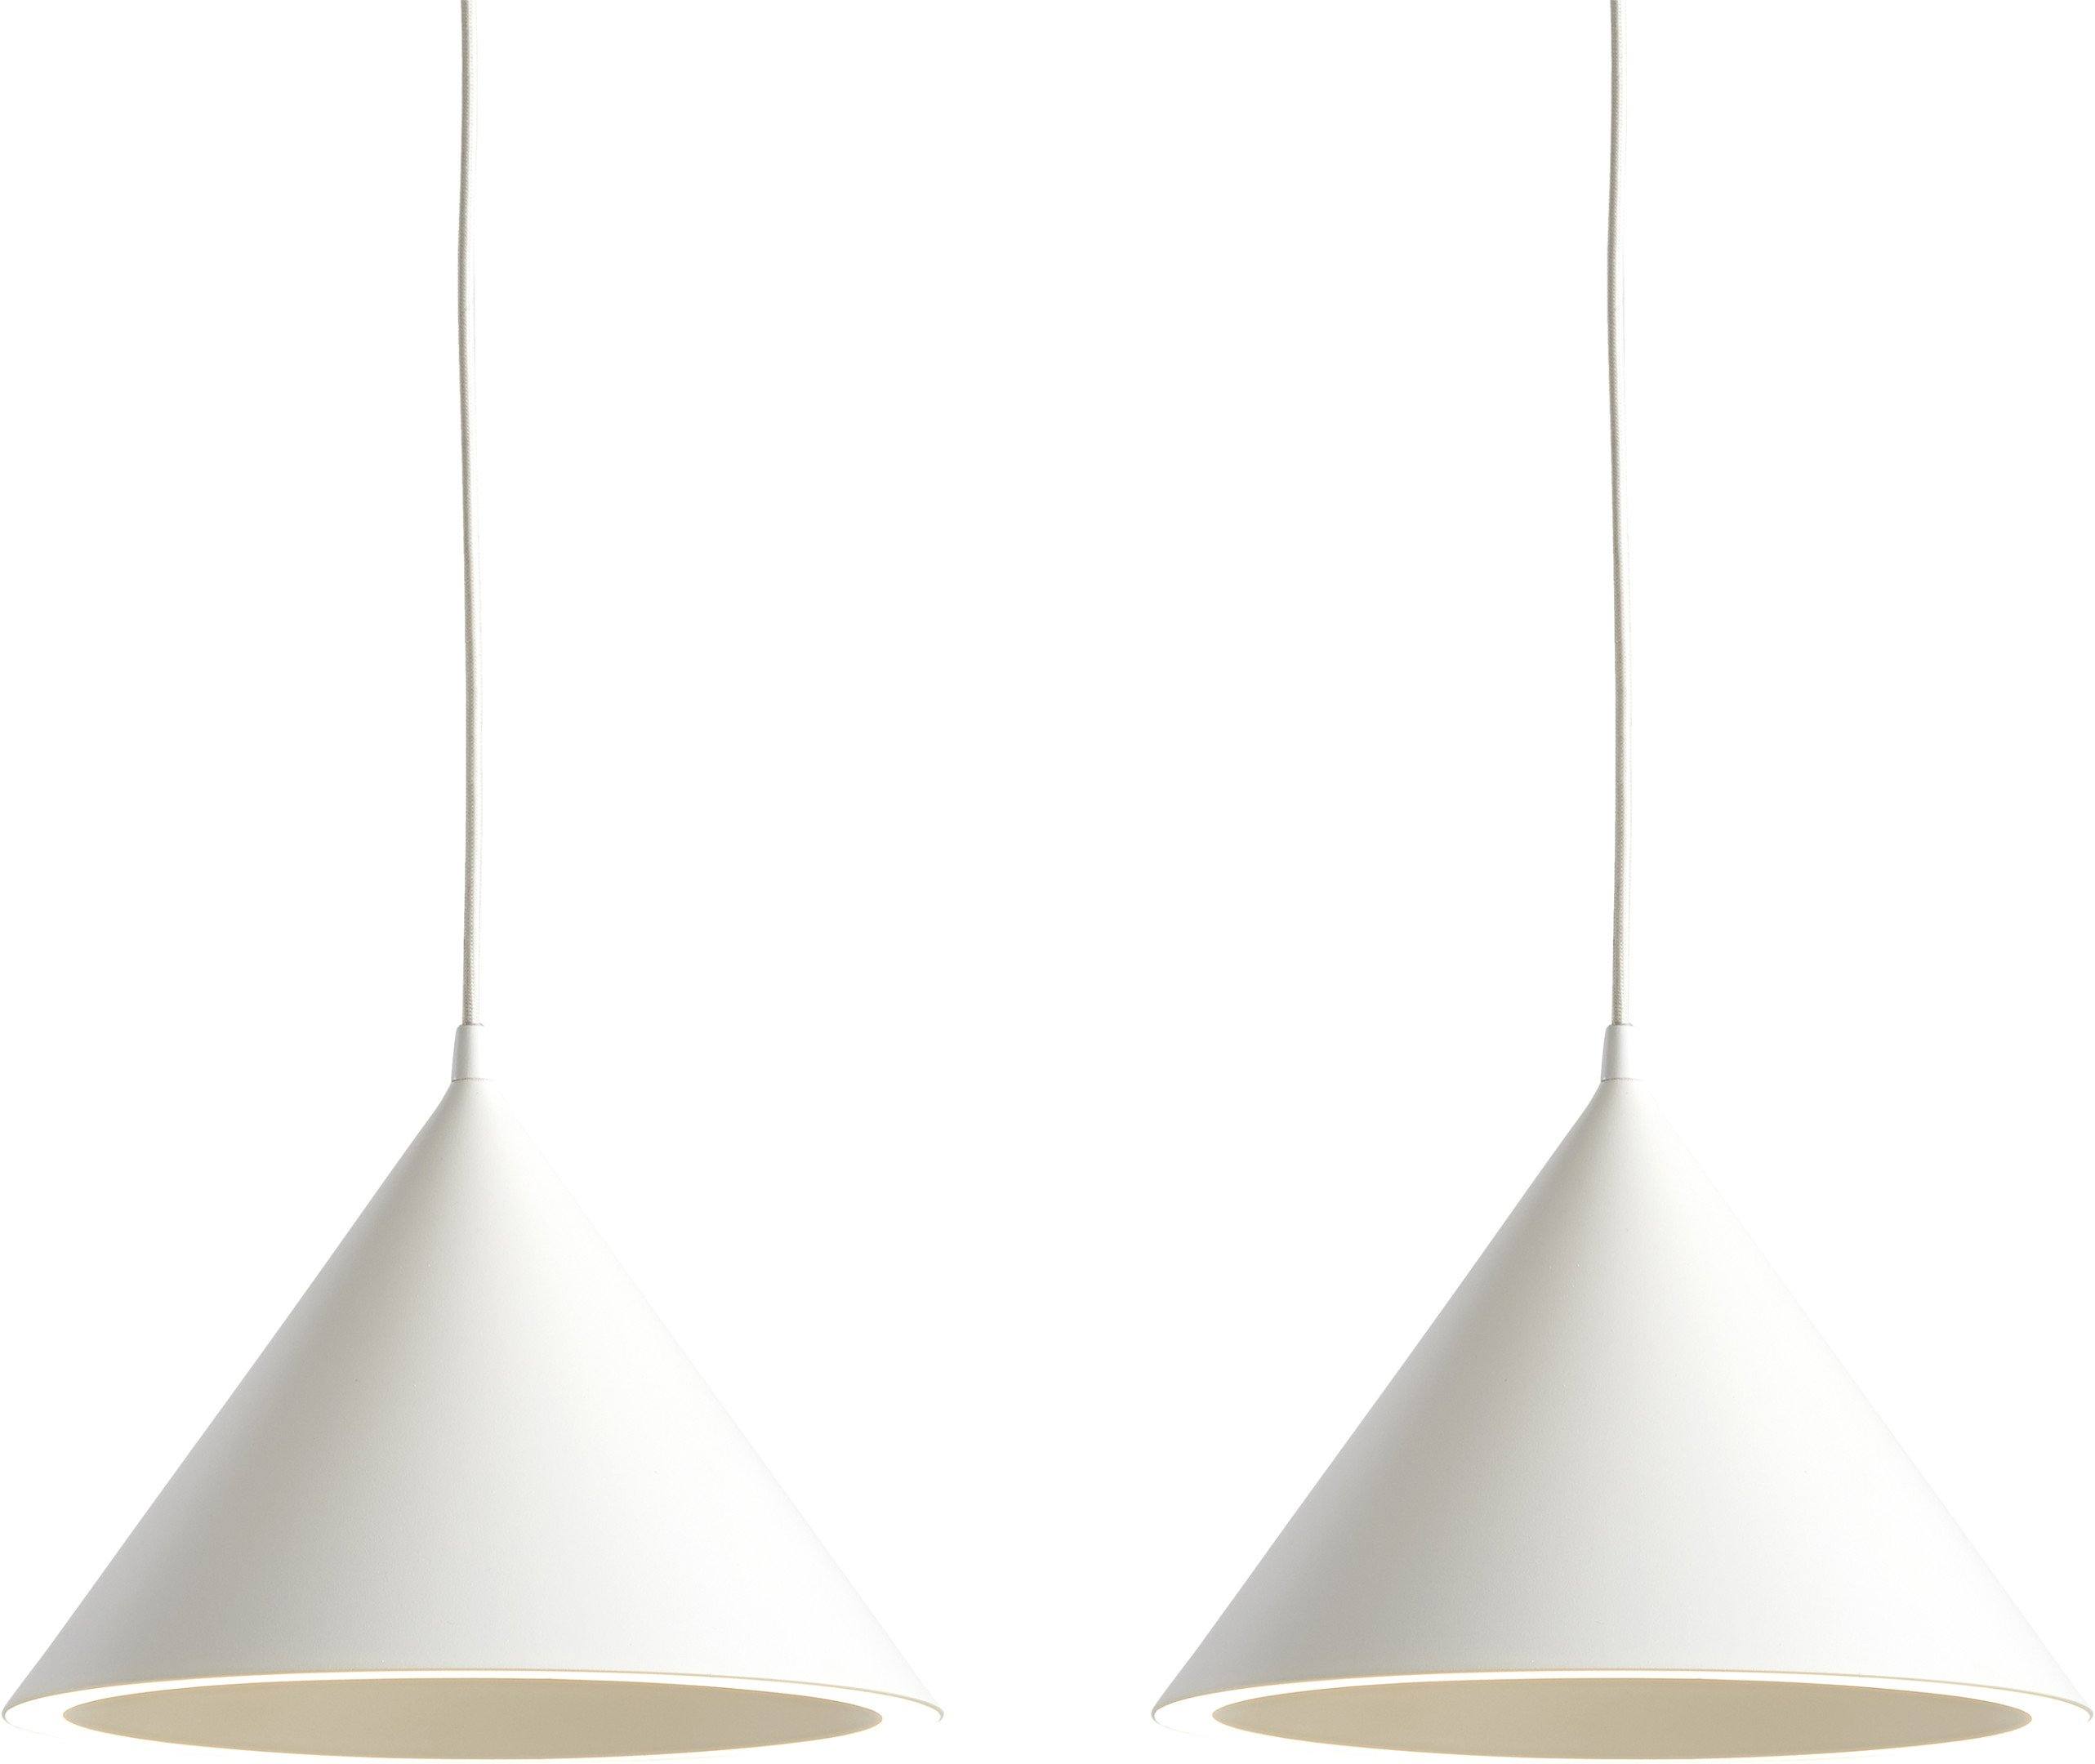 Pair of Annular Pendant Lamps S White by M-S-D-S for WOUD